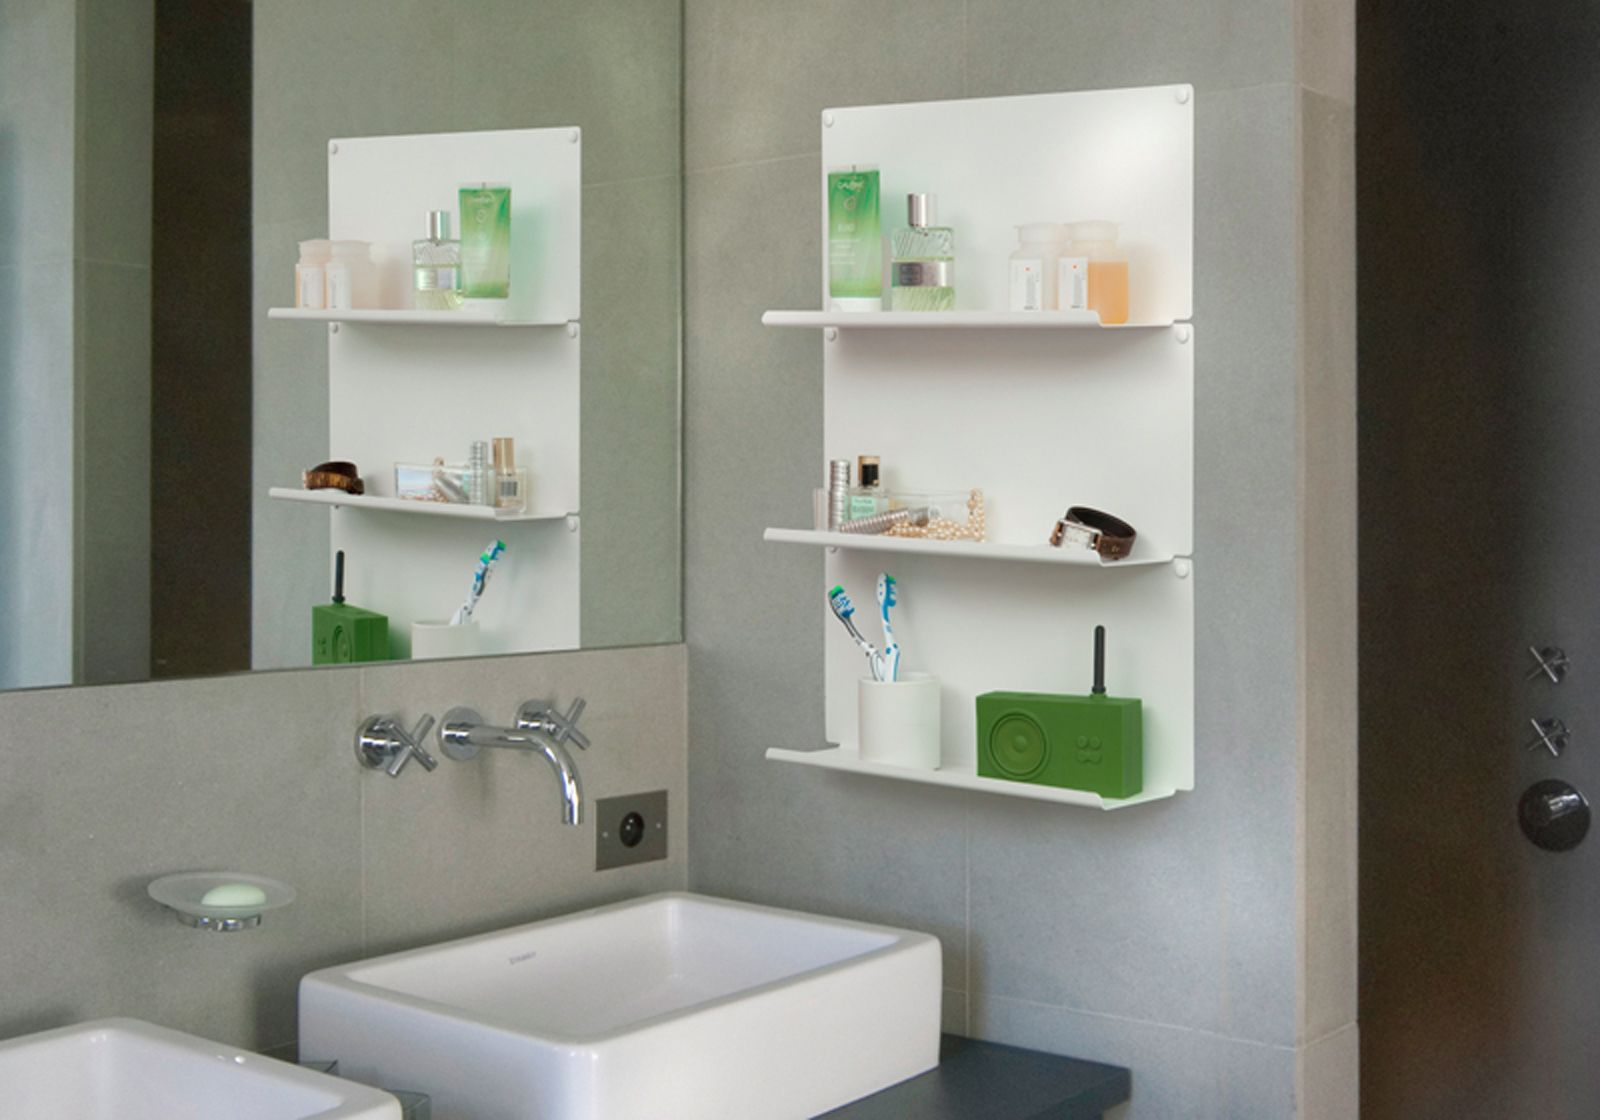 Bathroom shelves le - Estanterias para cds ...